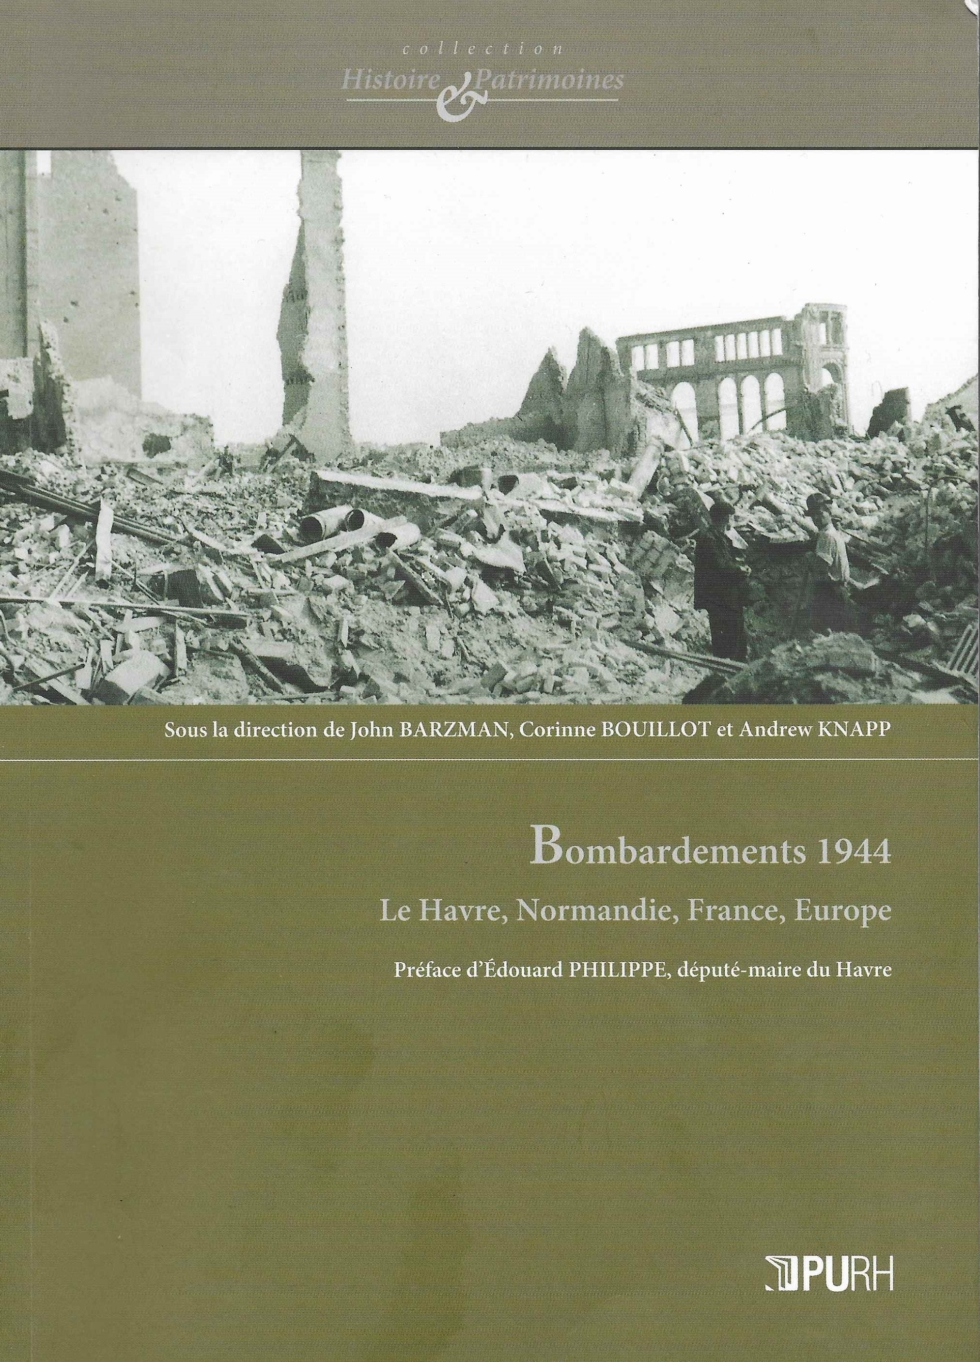 BOMBARDEMENTS 1944 – Le Havre, Normandie, France, Europe.